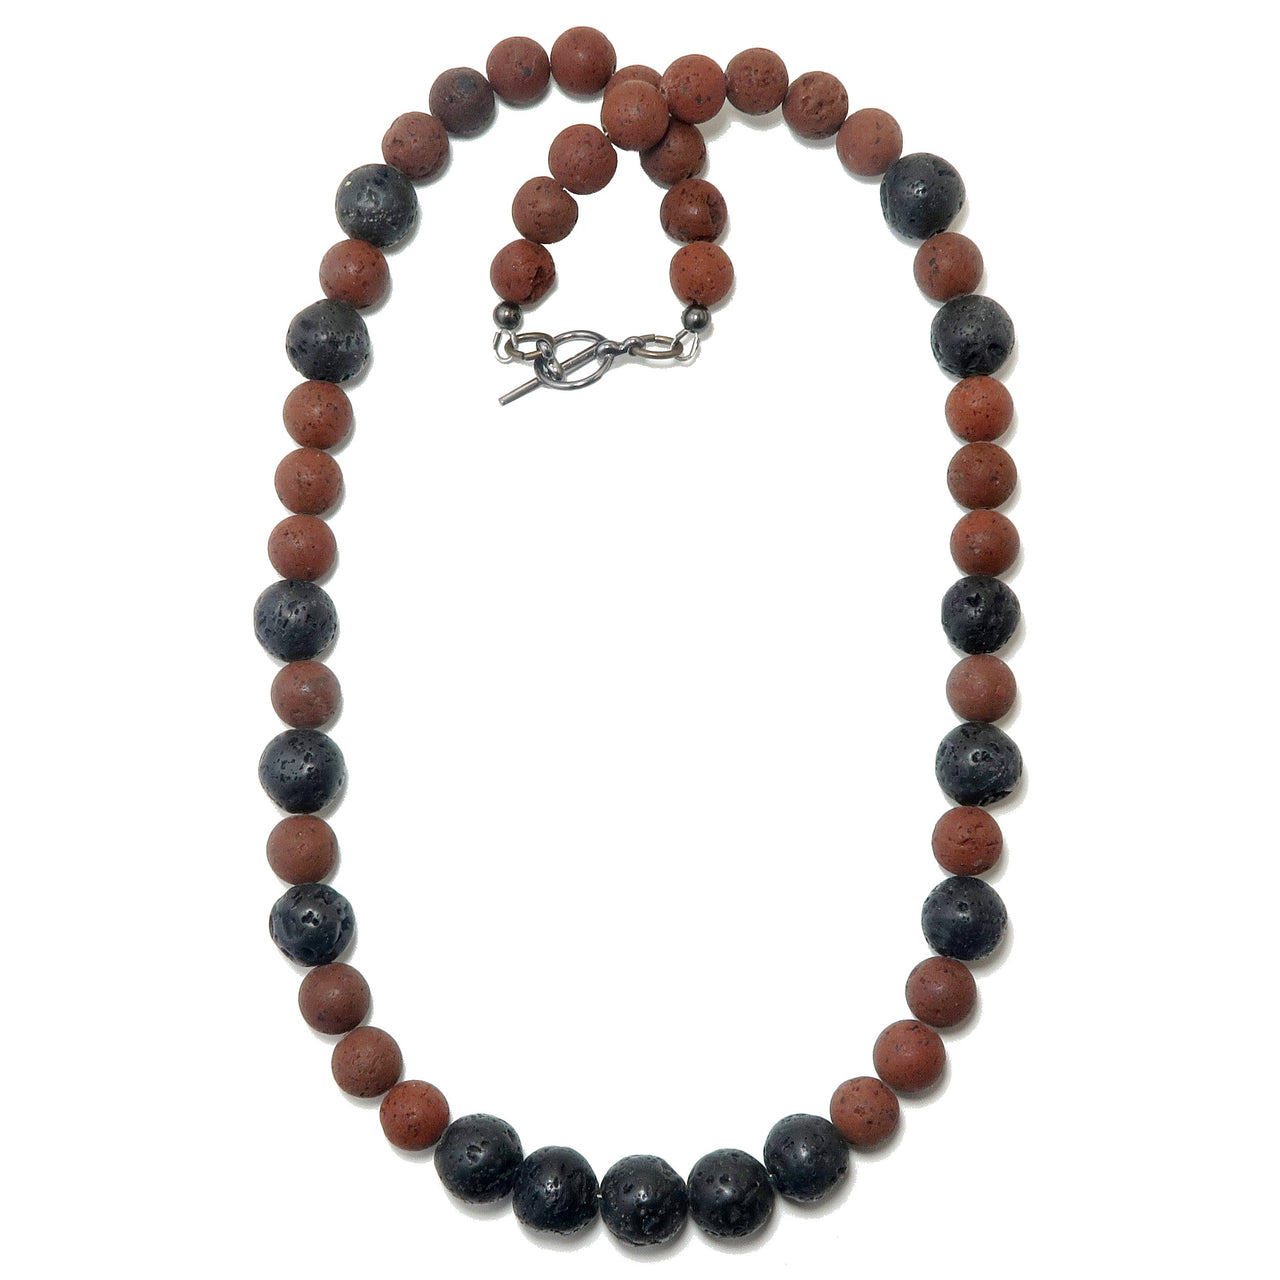 "Lava Necklace 20"" Red & Black Organic Stone Round Earthy Essential Oil Diffuser Unisex B01"